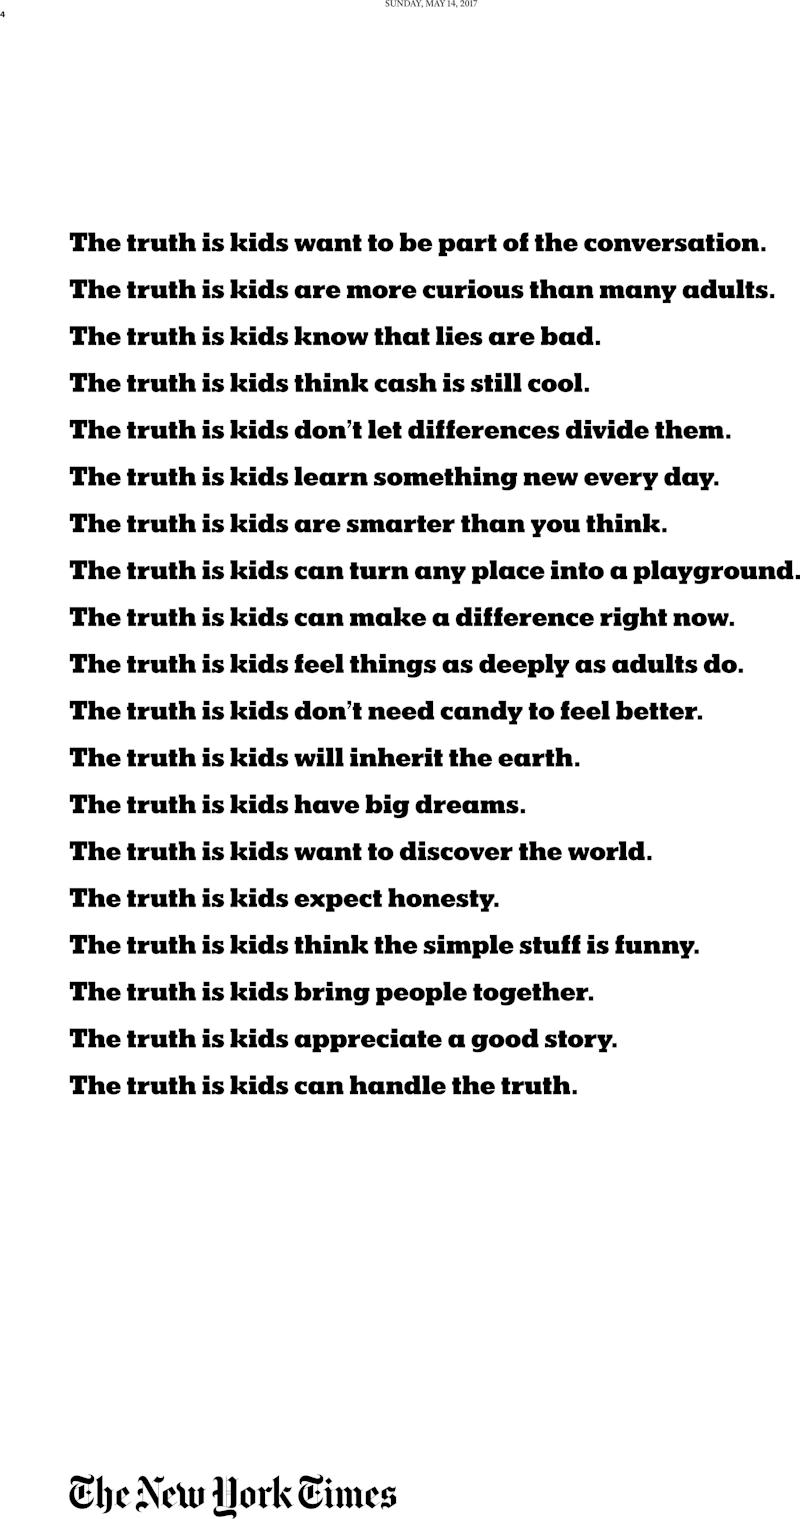 """The May 17 Kids section included a child-friendly version of the newspaper's """"<a href=""""http://investors.nytco.com/press/press-releases/press-release-details/2017/The-New-York-Times-to-Launch-Brand-Campaign-on-the-Search-for-Truth-and-the-Importance-of-Independent-Journalism/default.aspx"""" target=""""_blank"""" data-saferedirecturl=""""https://www.google.com/url?hl=en&q=http://investors.nytco.com/press/press-releases/press-release-details/2017/The-New-York-Times-to-Launch-Brand-Campaign-on-the-Search-for-Truth-and-the-Importance-of-Independent-Journalism/default.aspx&source=gmail&ust=1494609144171000&usg=AFQjCNGZG4Xu5FEYpkkjtBxPOqbD9GcRBQ"""" data-beacon=""""{""""p"""":{""""lnid"""":""""Truth is Hard"""",""""mpid"""":2,""""plid"""":""""http://investors.nytco.com/press/press-releases/press-release-details/2017/The-New-York-Times-to-Launch-Brand-Campaign-on-the-Search-for-Truth-and-the-Importance-of-Independent-Journalism/default.aspx""""}}"""" data-beacon-parsed=""""true"""">Truth is Hard</a>"""" brand campaign."""